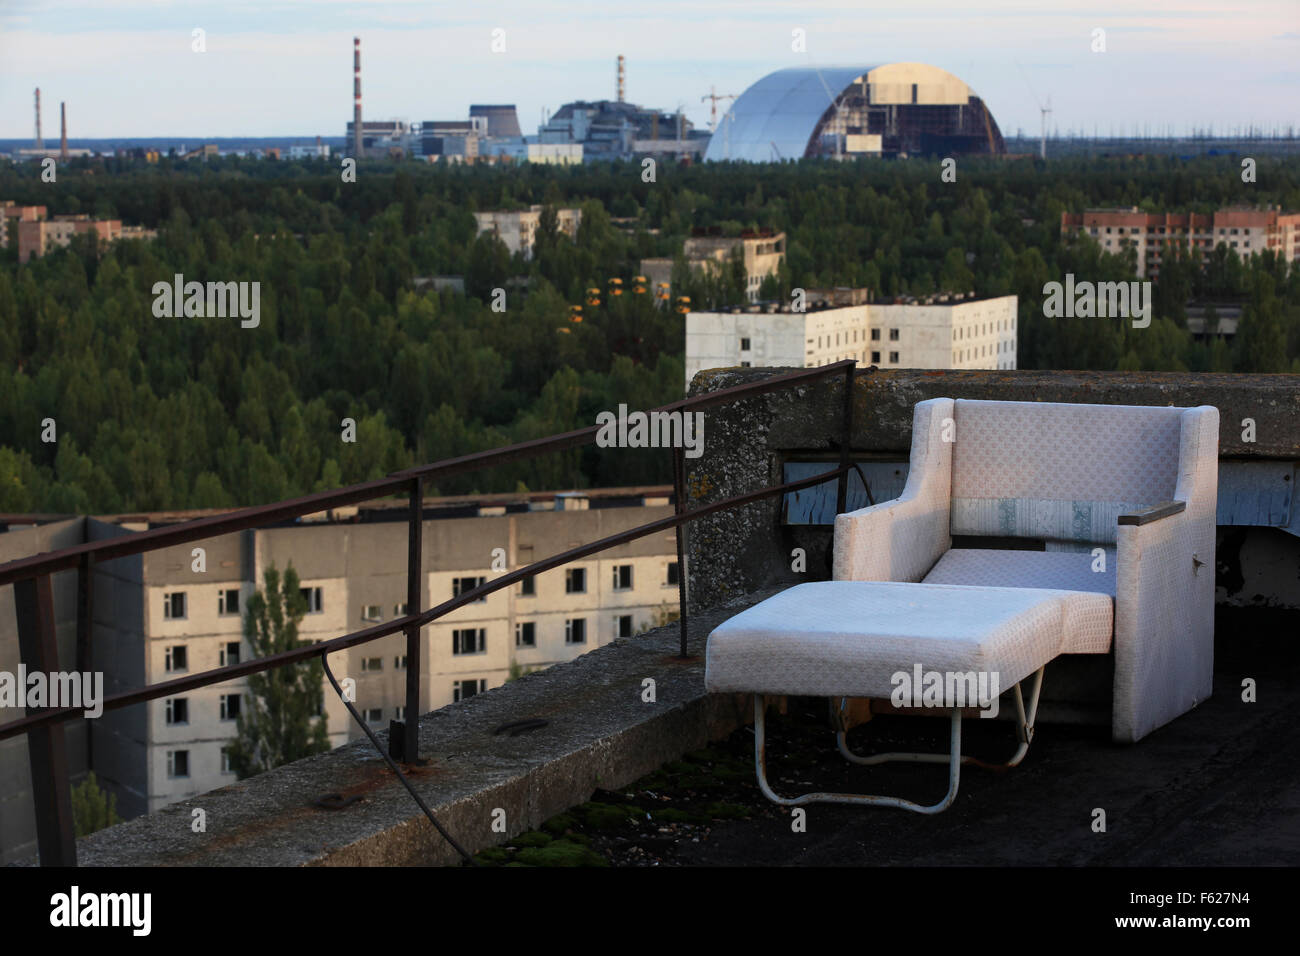 The abandoned town of Pripyat and the nearby Chernobyl Nuclear Power Plant seen from the roof of a high-rise building. - Stock Image